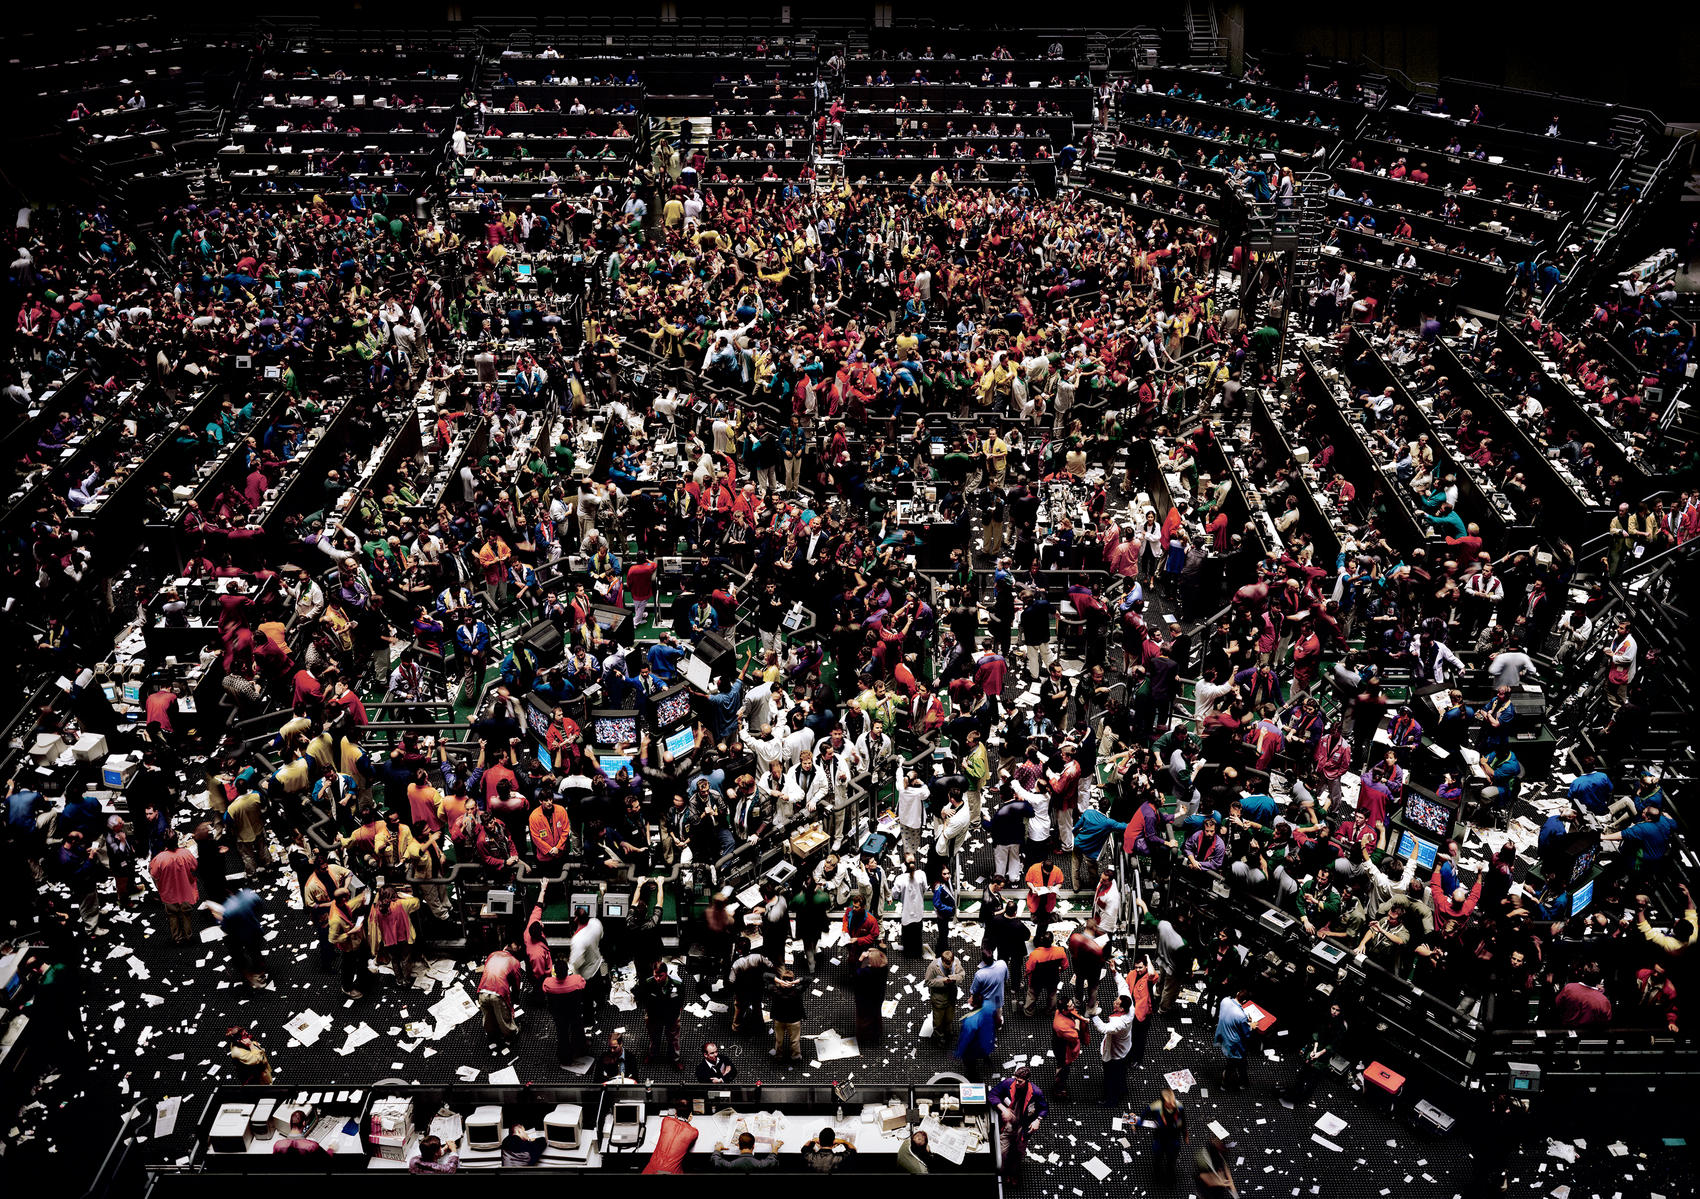 5.<br />Fotó: Andreas Gursky: Chicago Board of Trade III (1999-2000)<br />$3,298,755<br />June 26, 2013<br />Sotheby's London